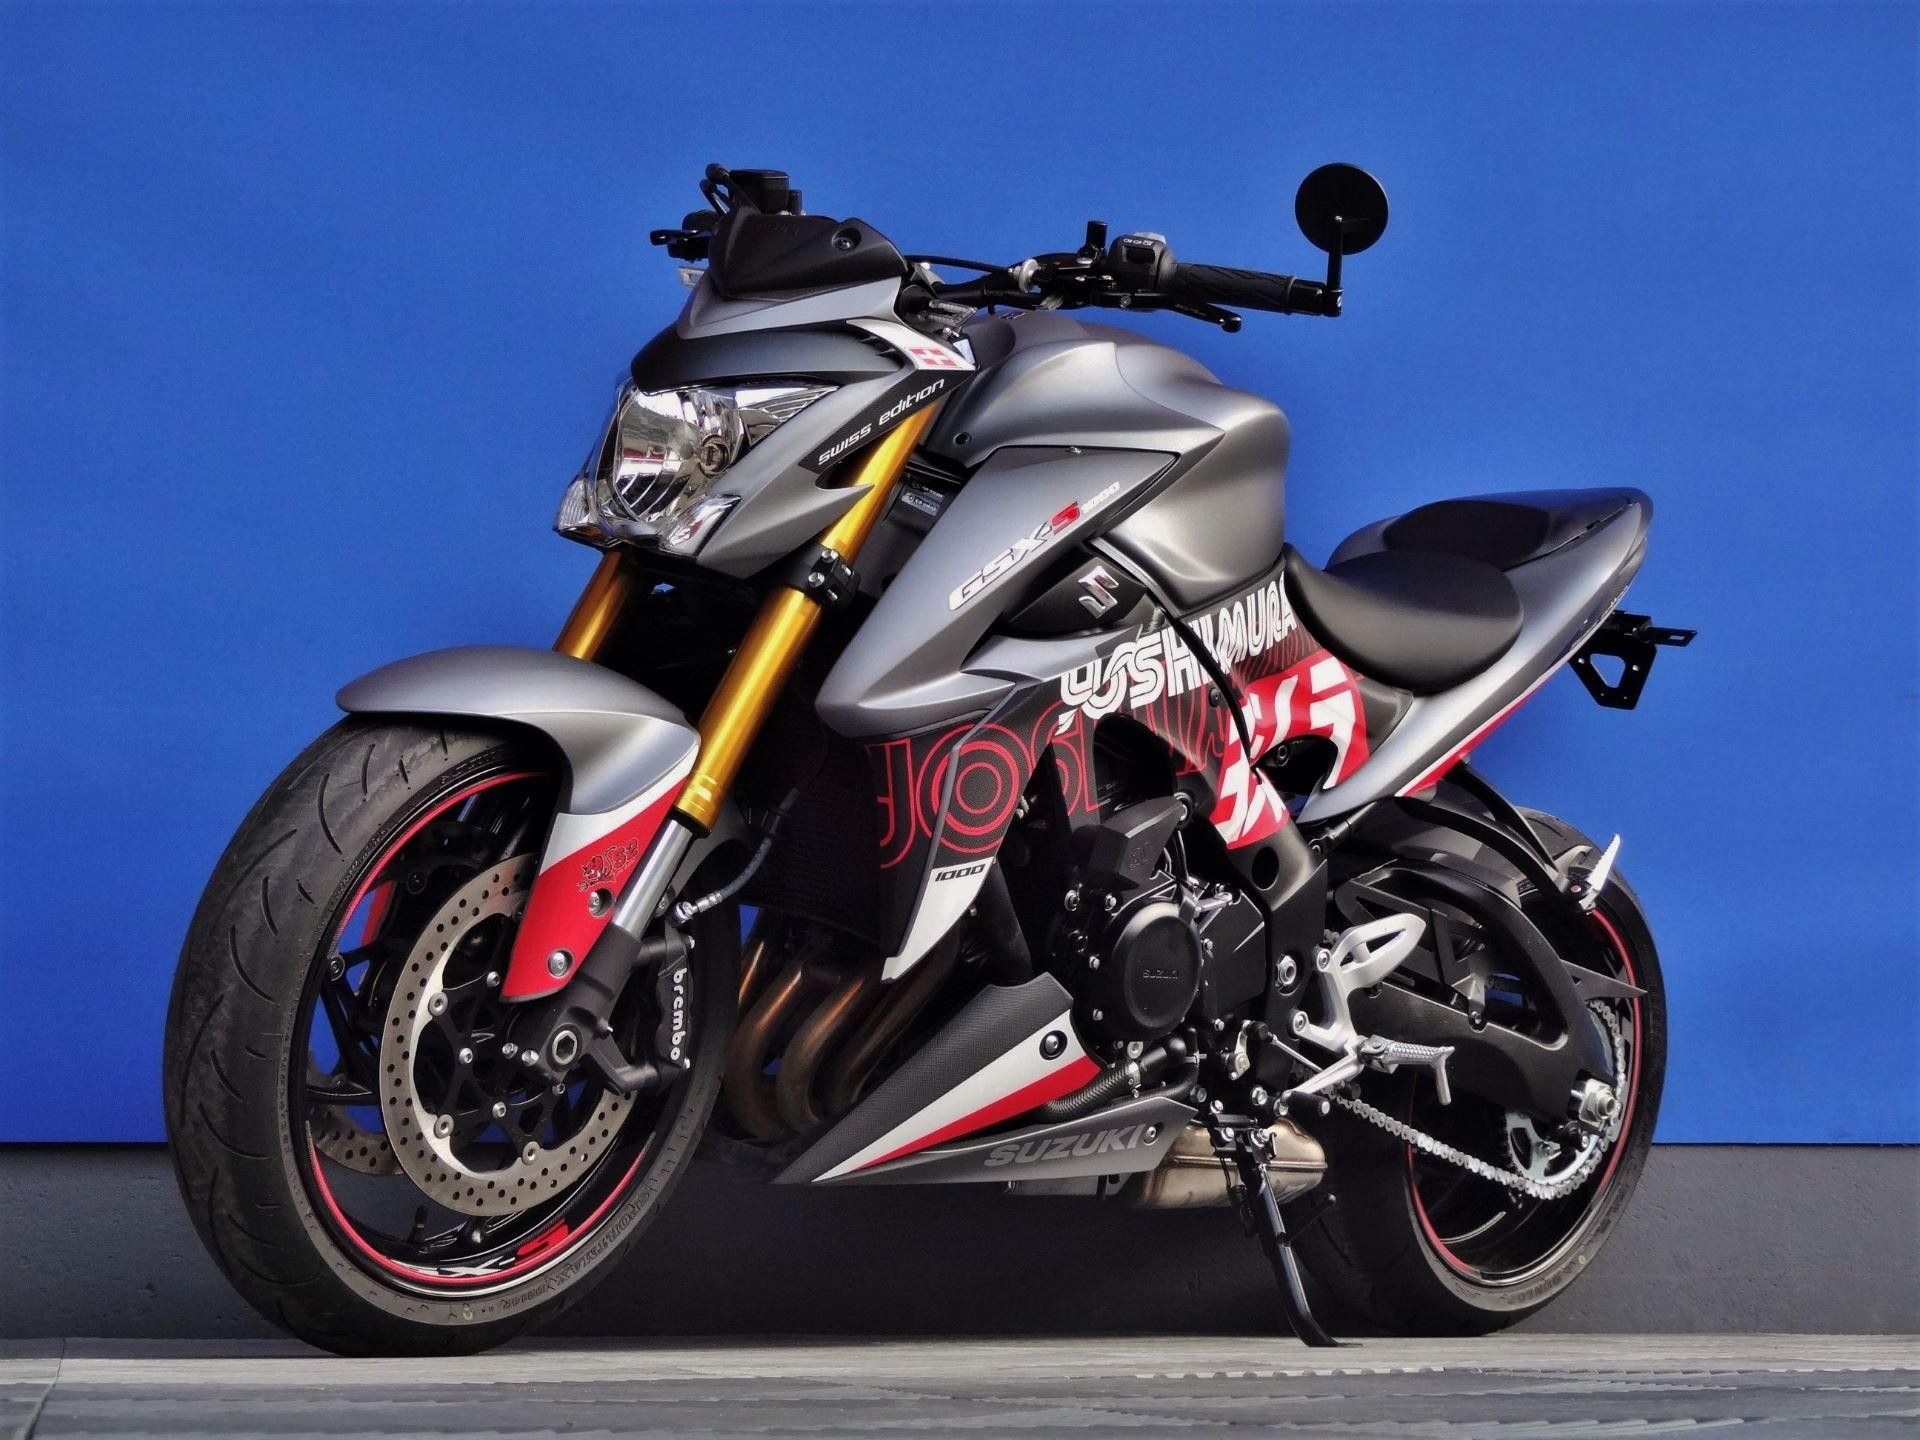 buy motorbike pre owned suzuki gsx s 1000 abs yoshimura. Black Bedroom Furniture Sets. Home Design Ideas